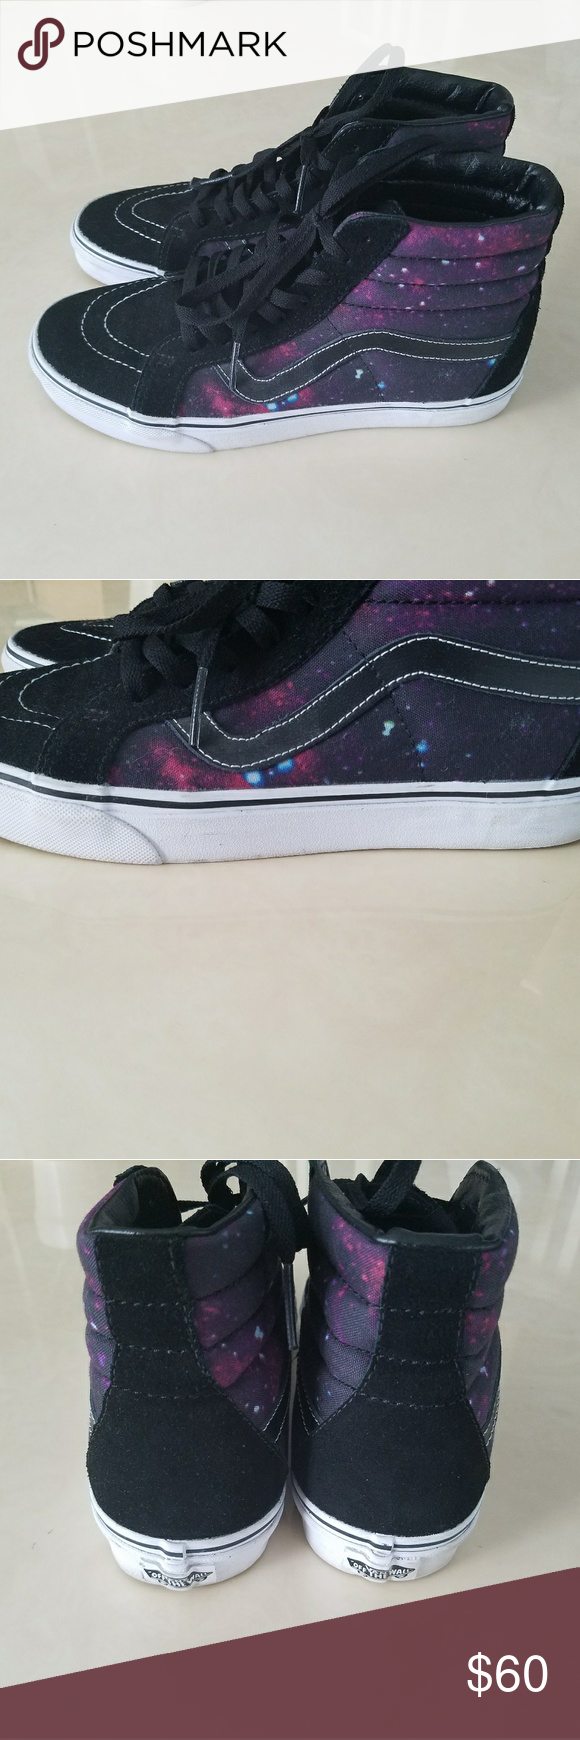 d9abfb22a9 Rare! Vans sk8 hi cosmic space galaxy shoe Mens 8 Like new